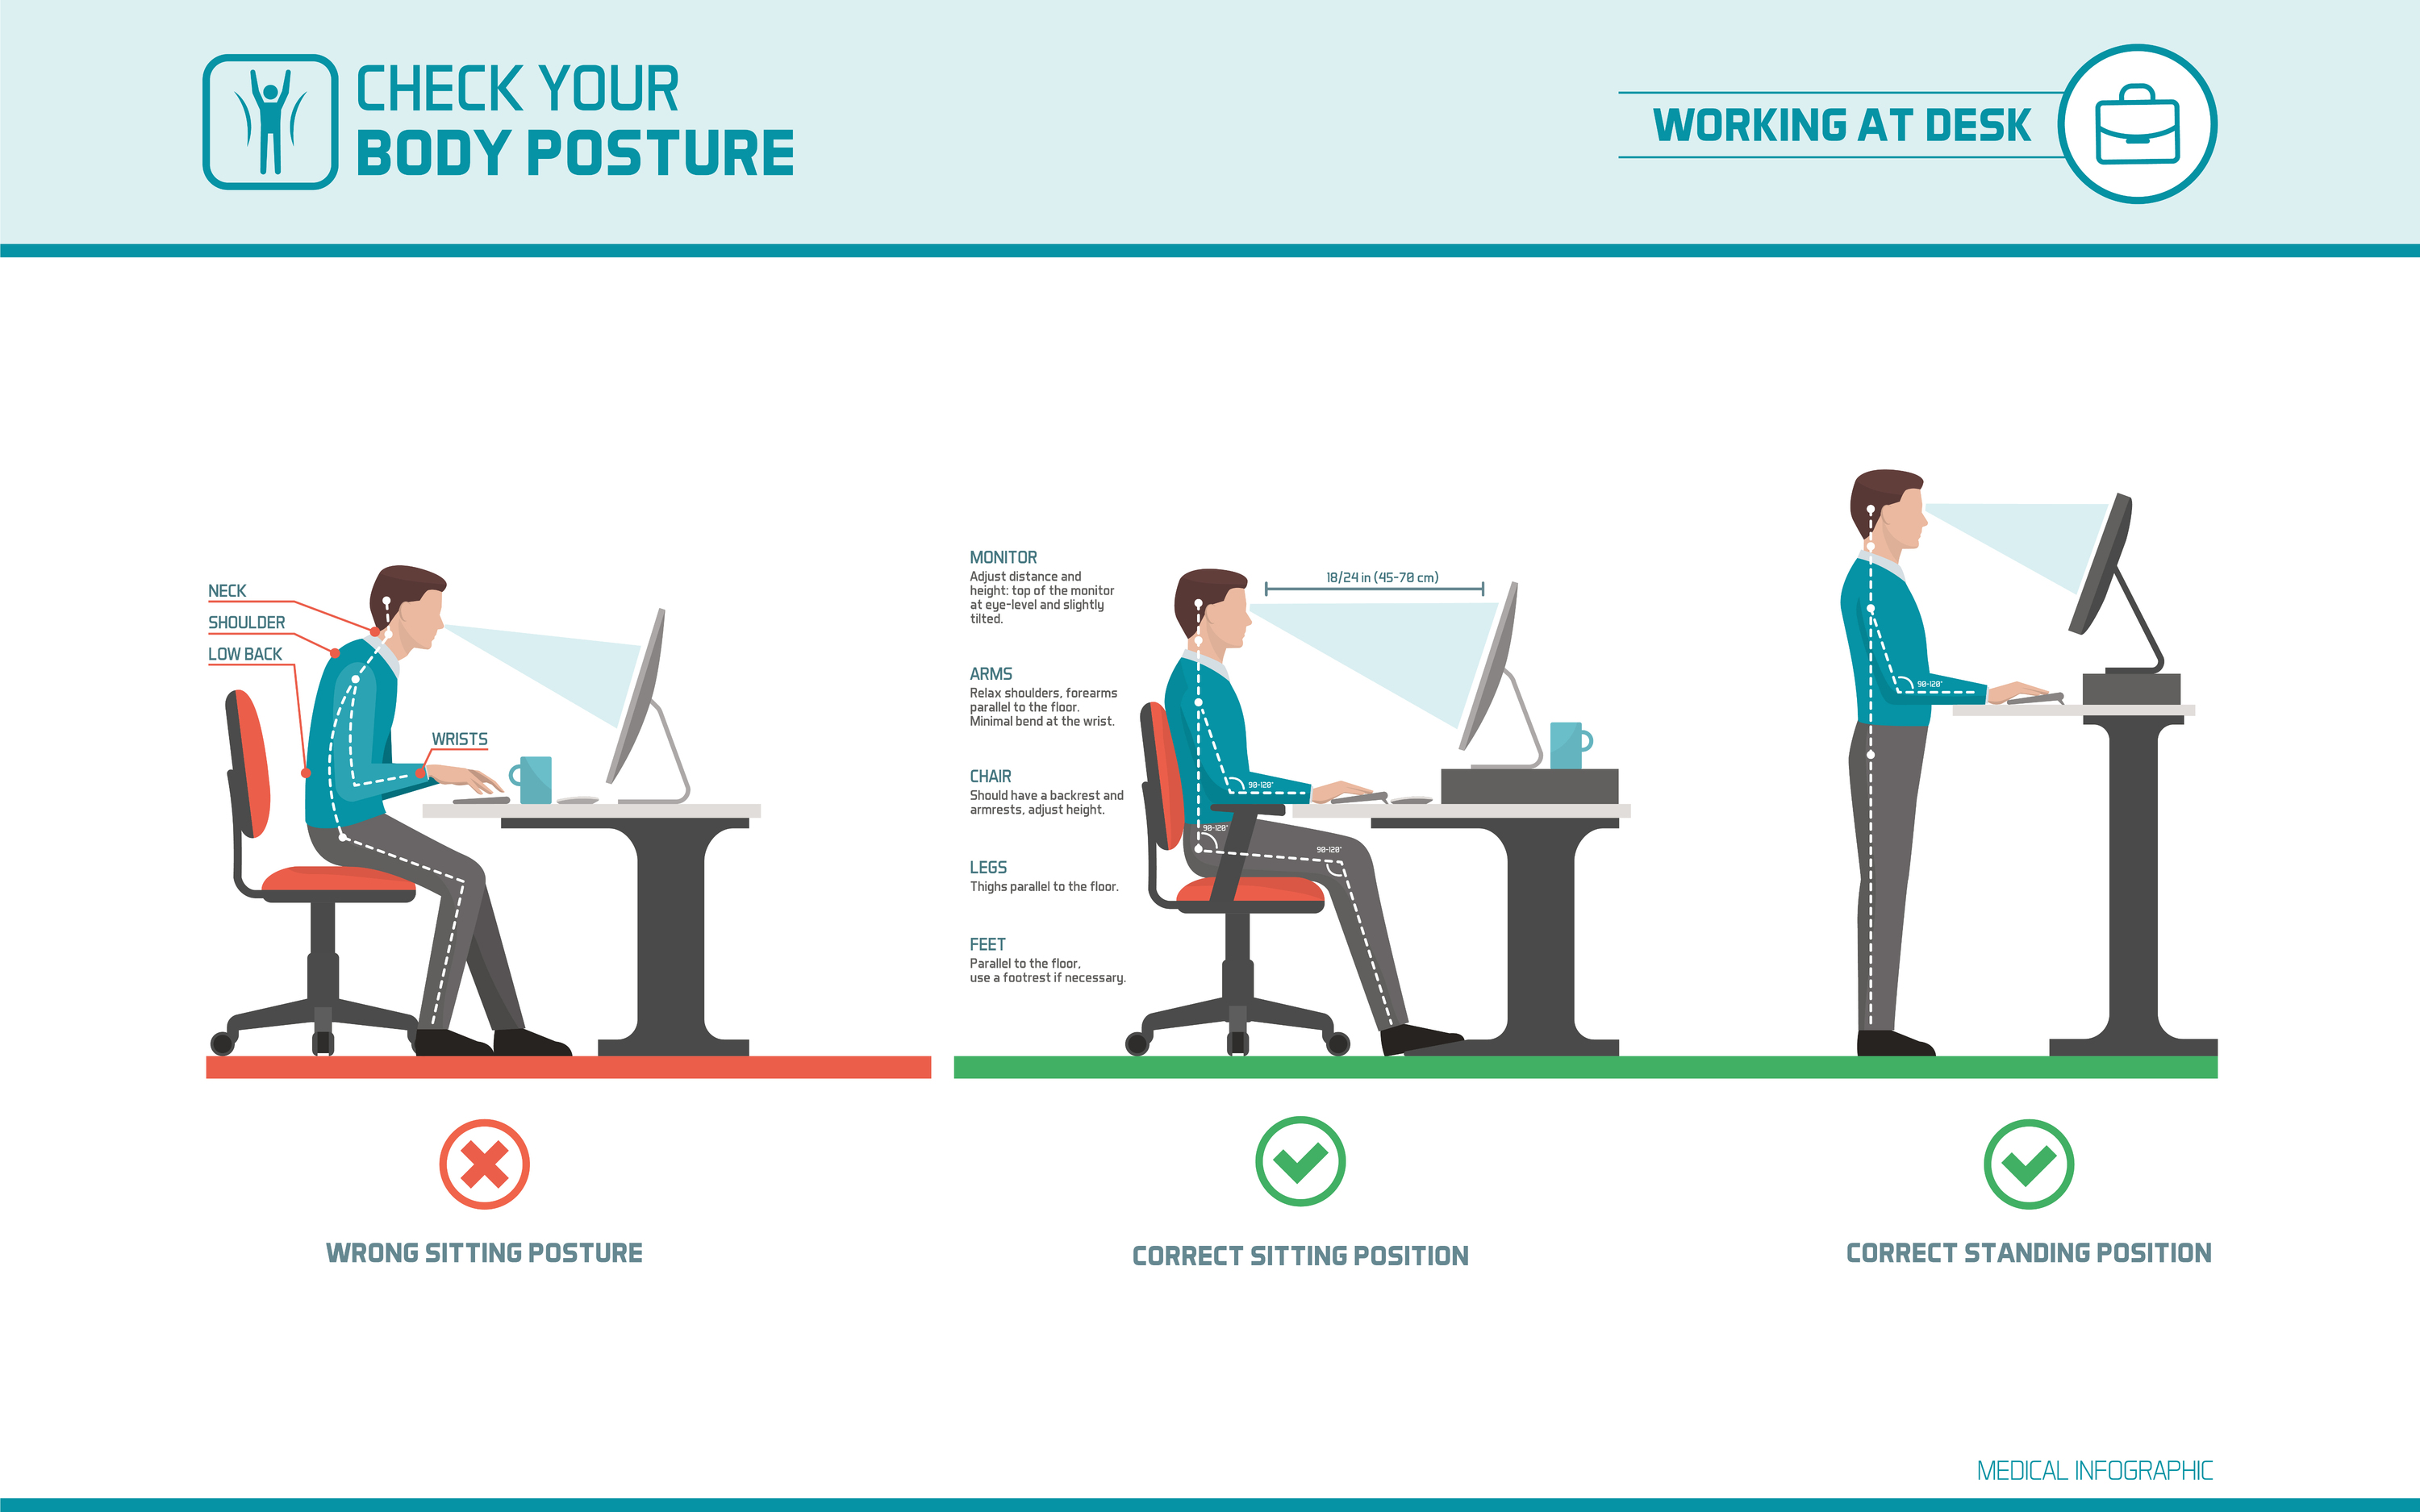 Correcting Desk Posture Can Make For A Happier Work Day